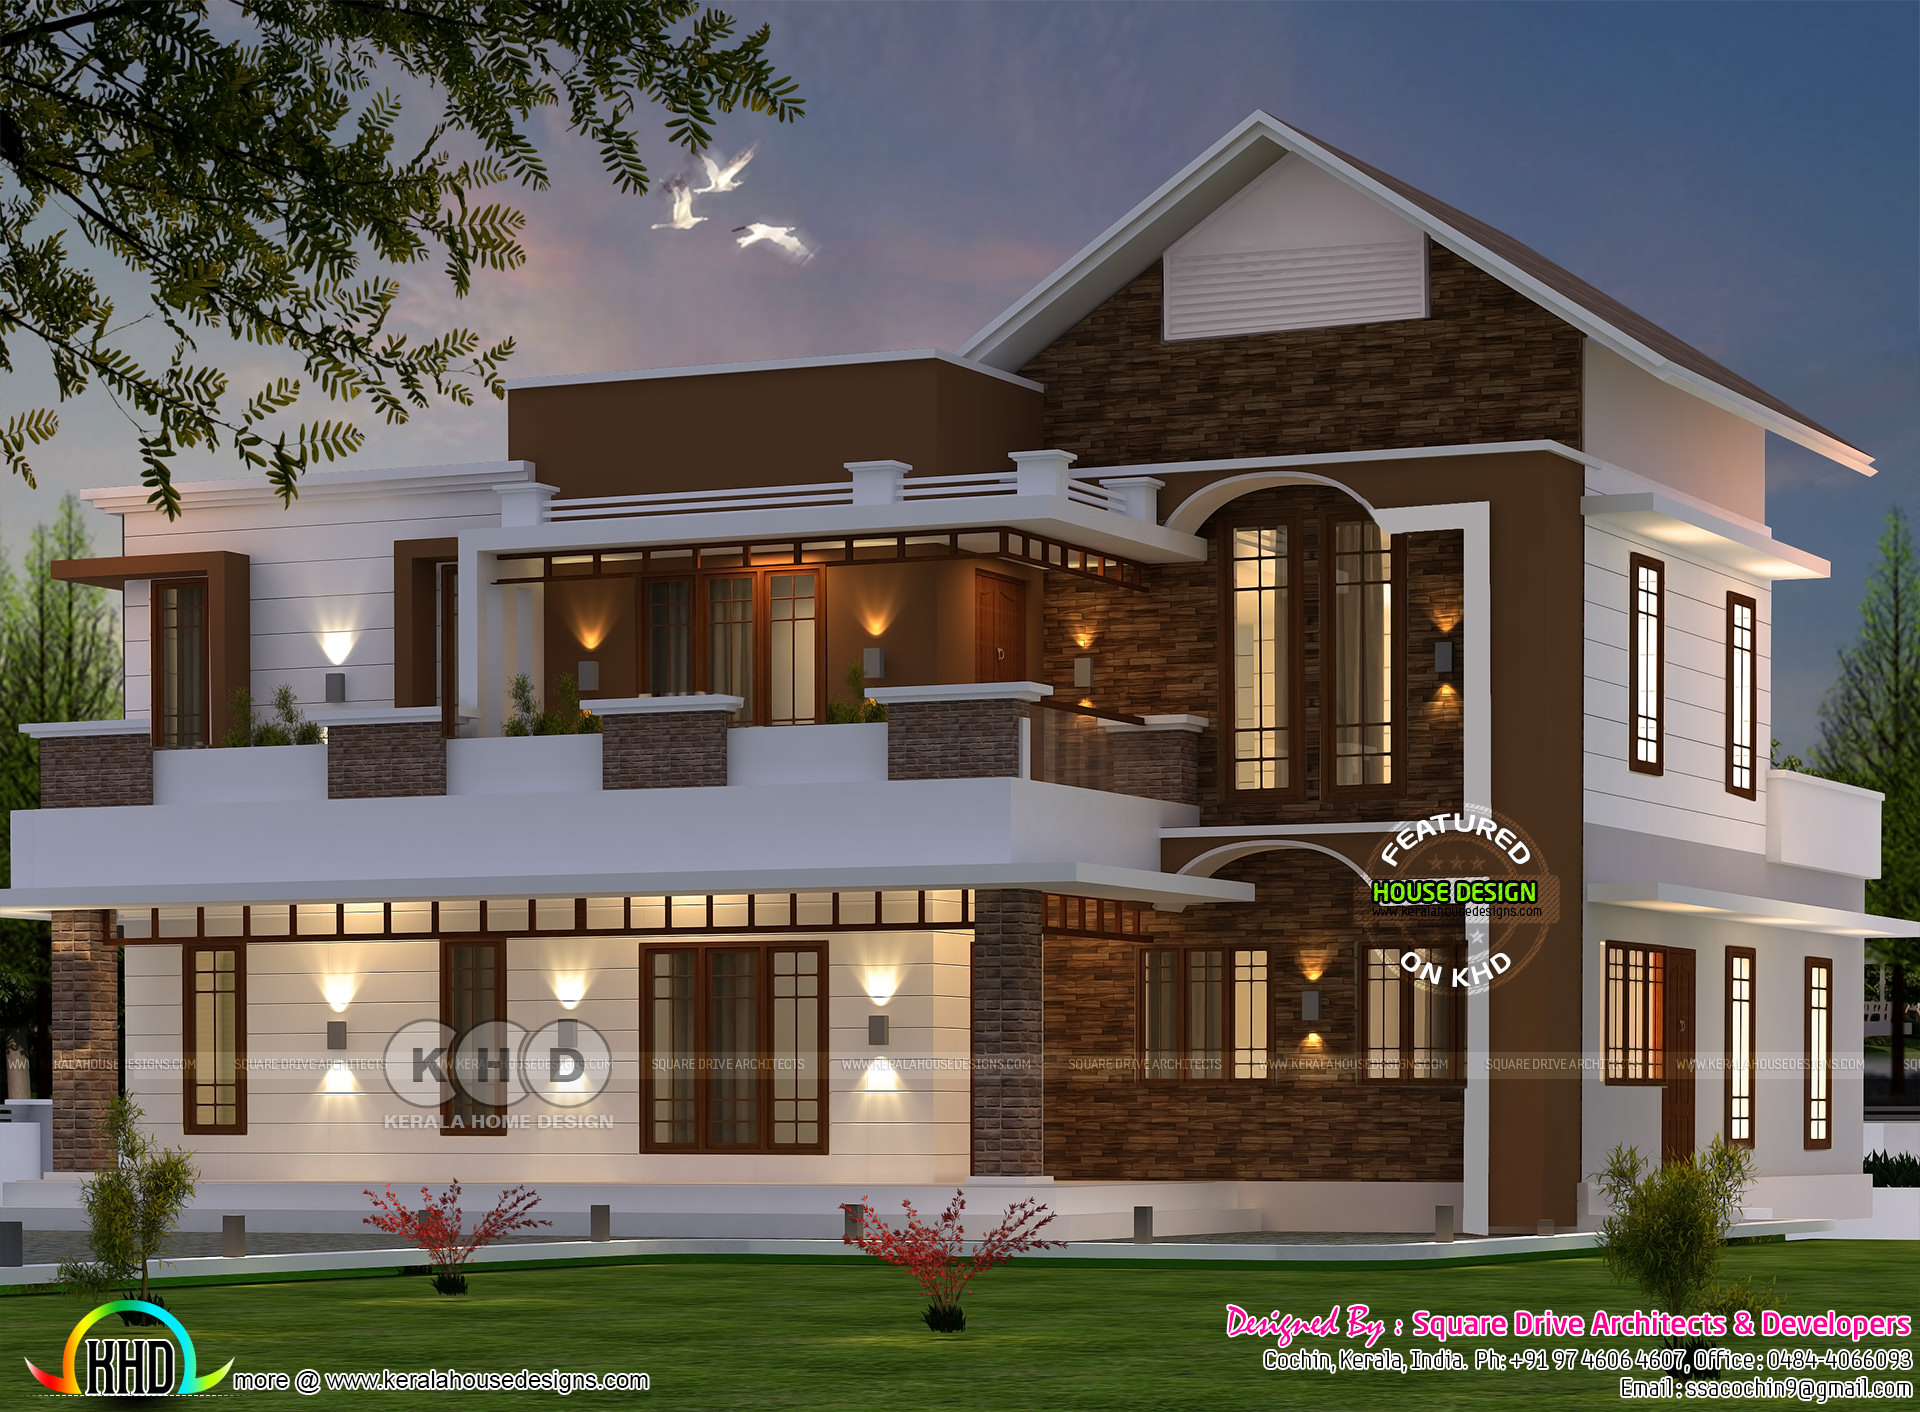 latest house designs 1750 square feet 4 bedroom double floor new modern home 2700 square feet 4 bedroom mixed roof modern house